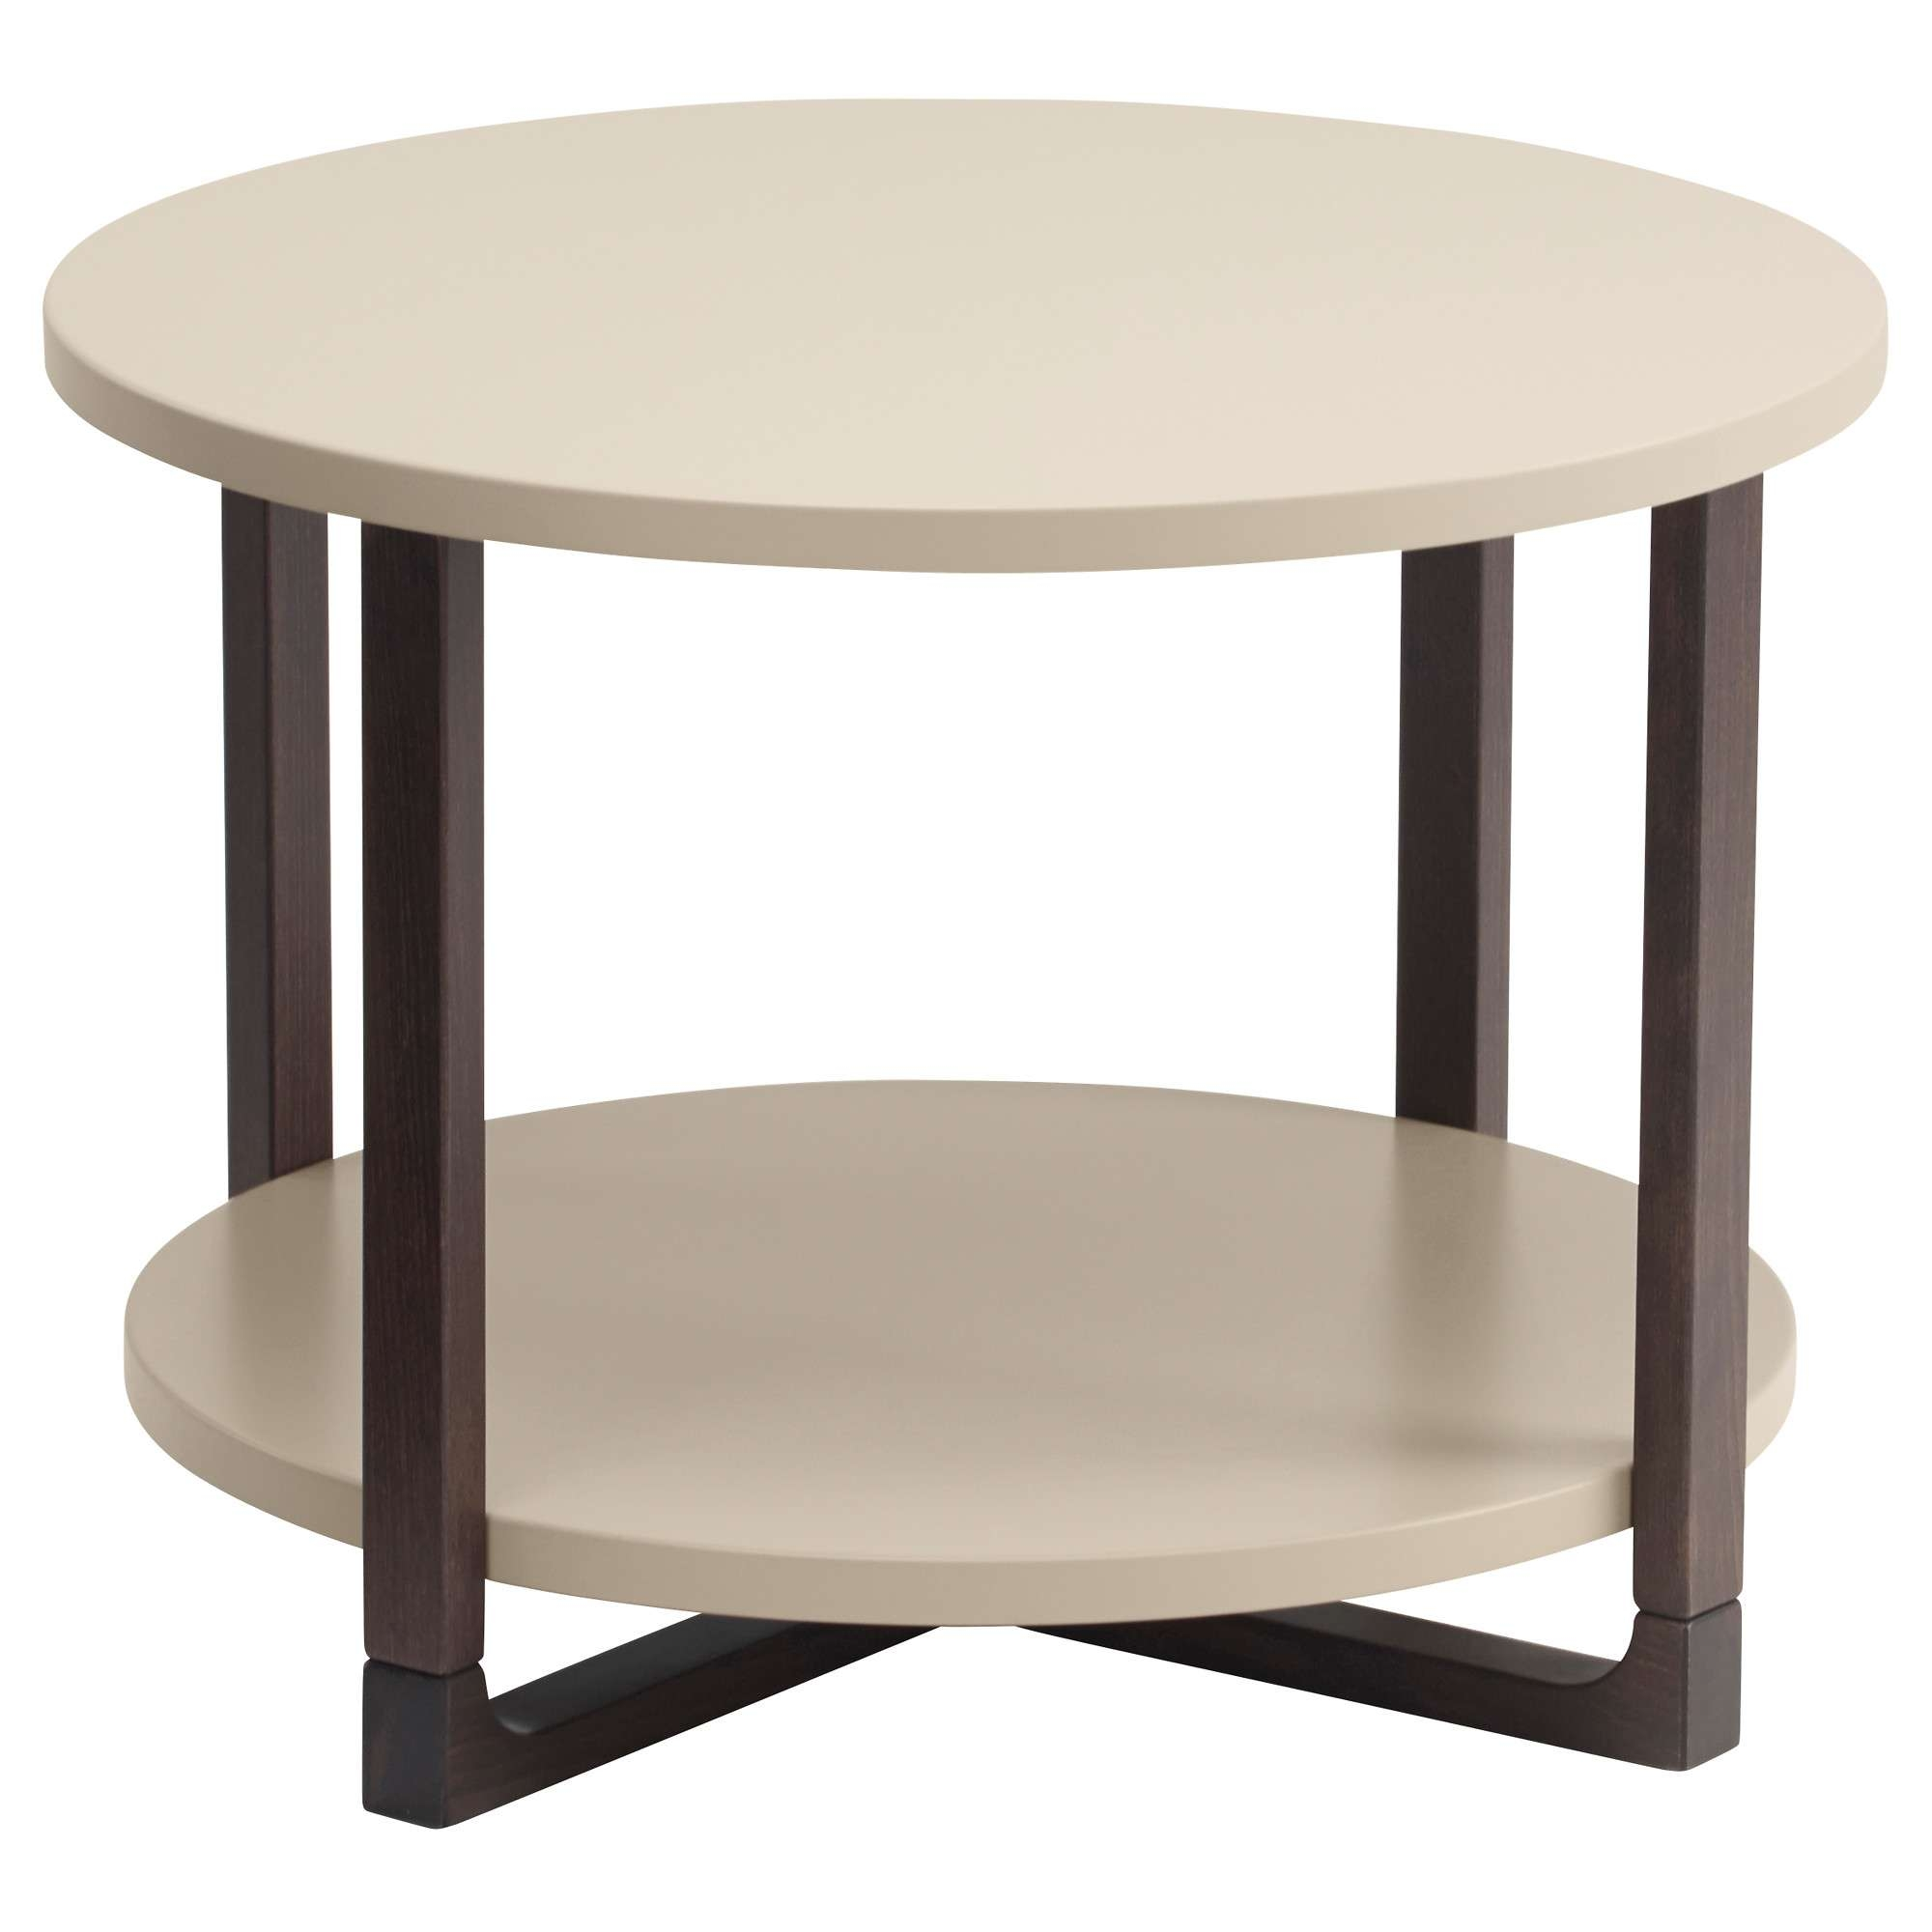 Rissna Side Table – Ikea In Latest Beige Coffee Tables (View 17 of 20)